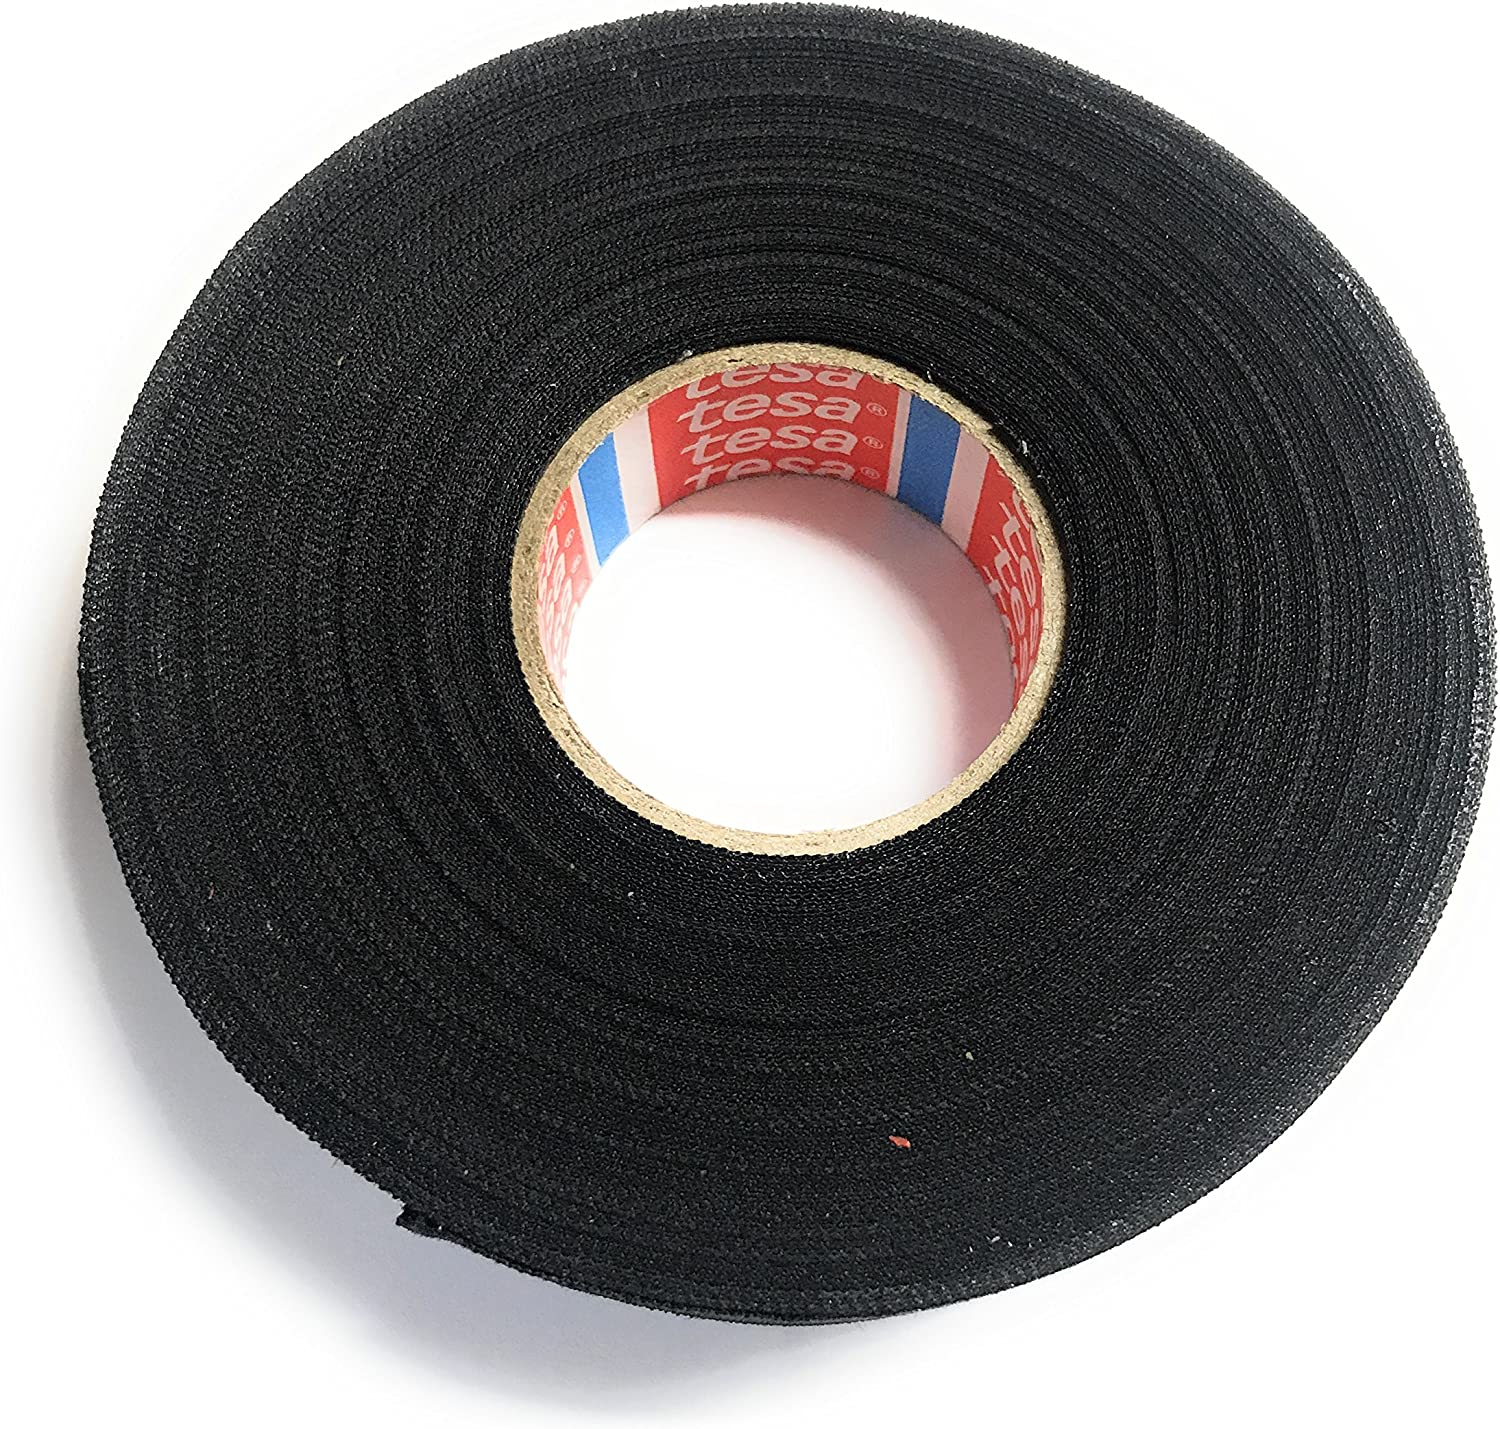 1 Roll TESA 51006 PET Fabric Tape Wiring Looms Cable Harness 19mm x 25M